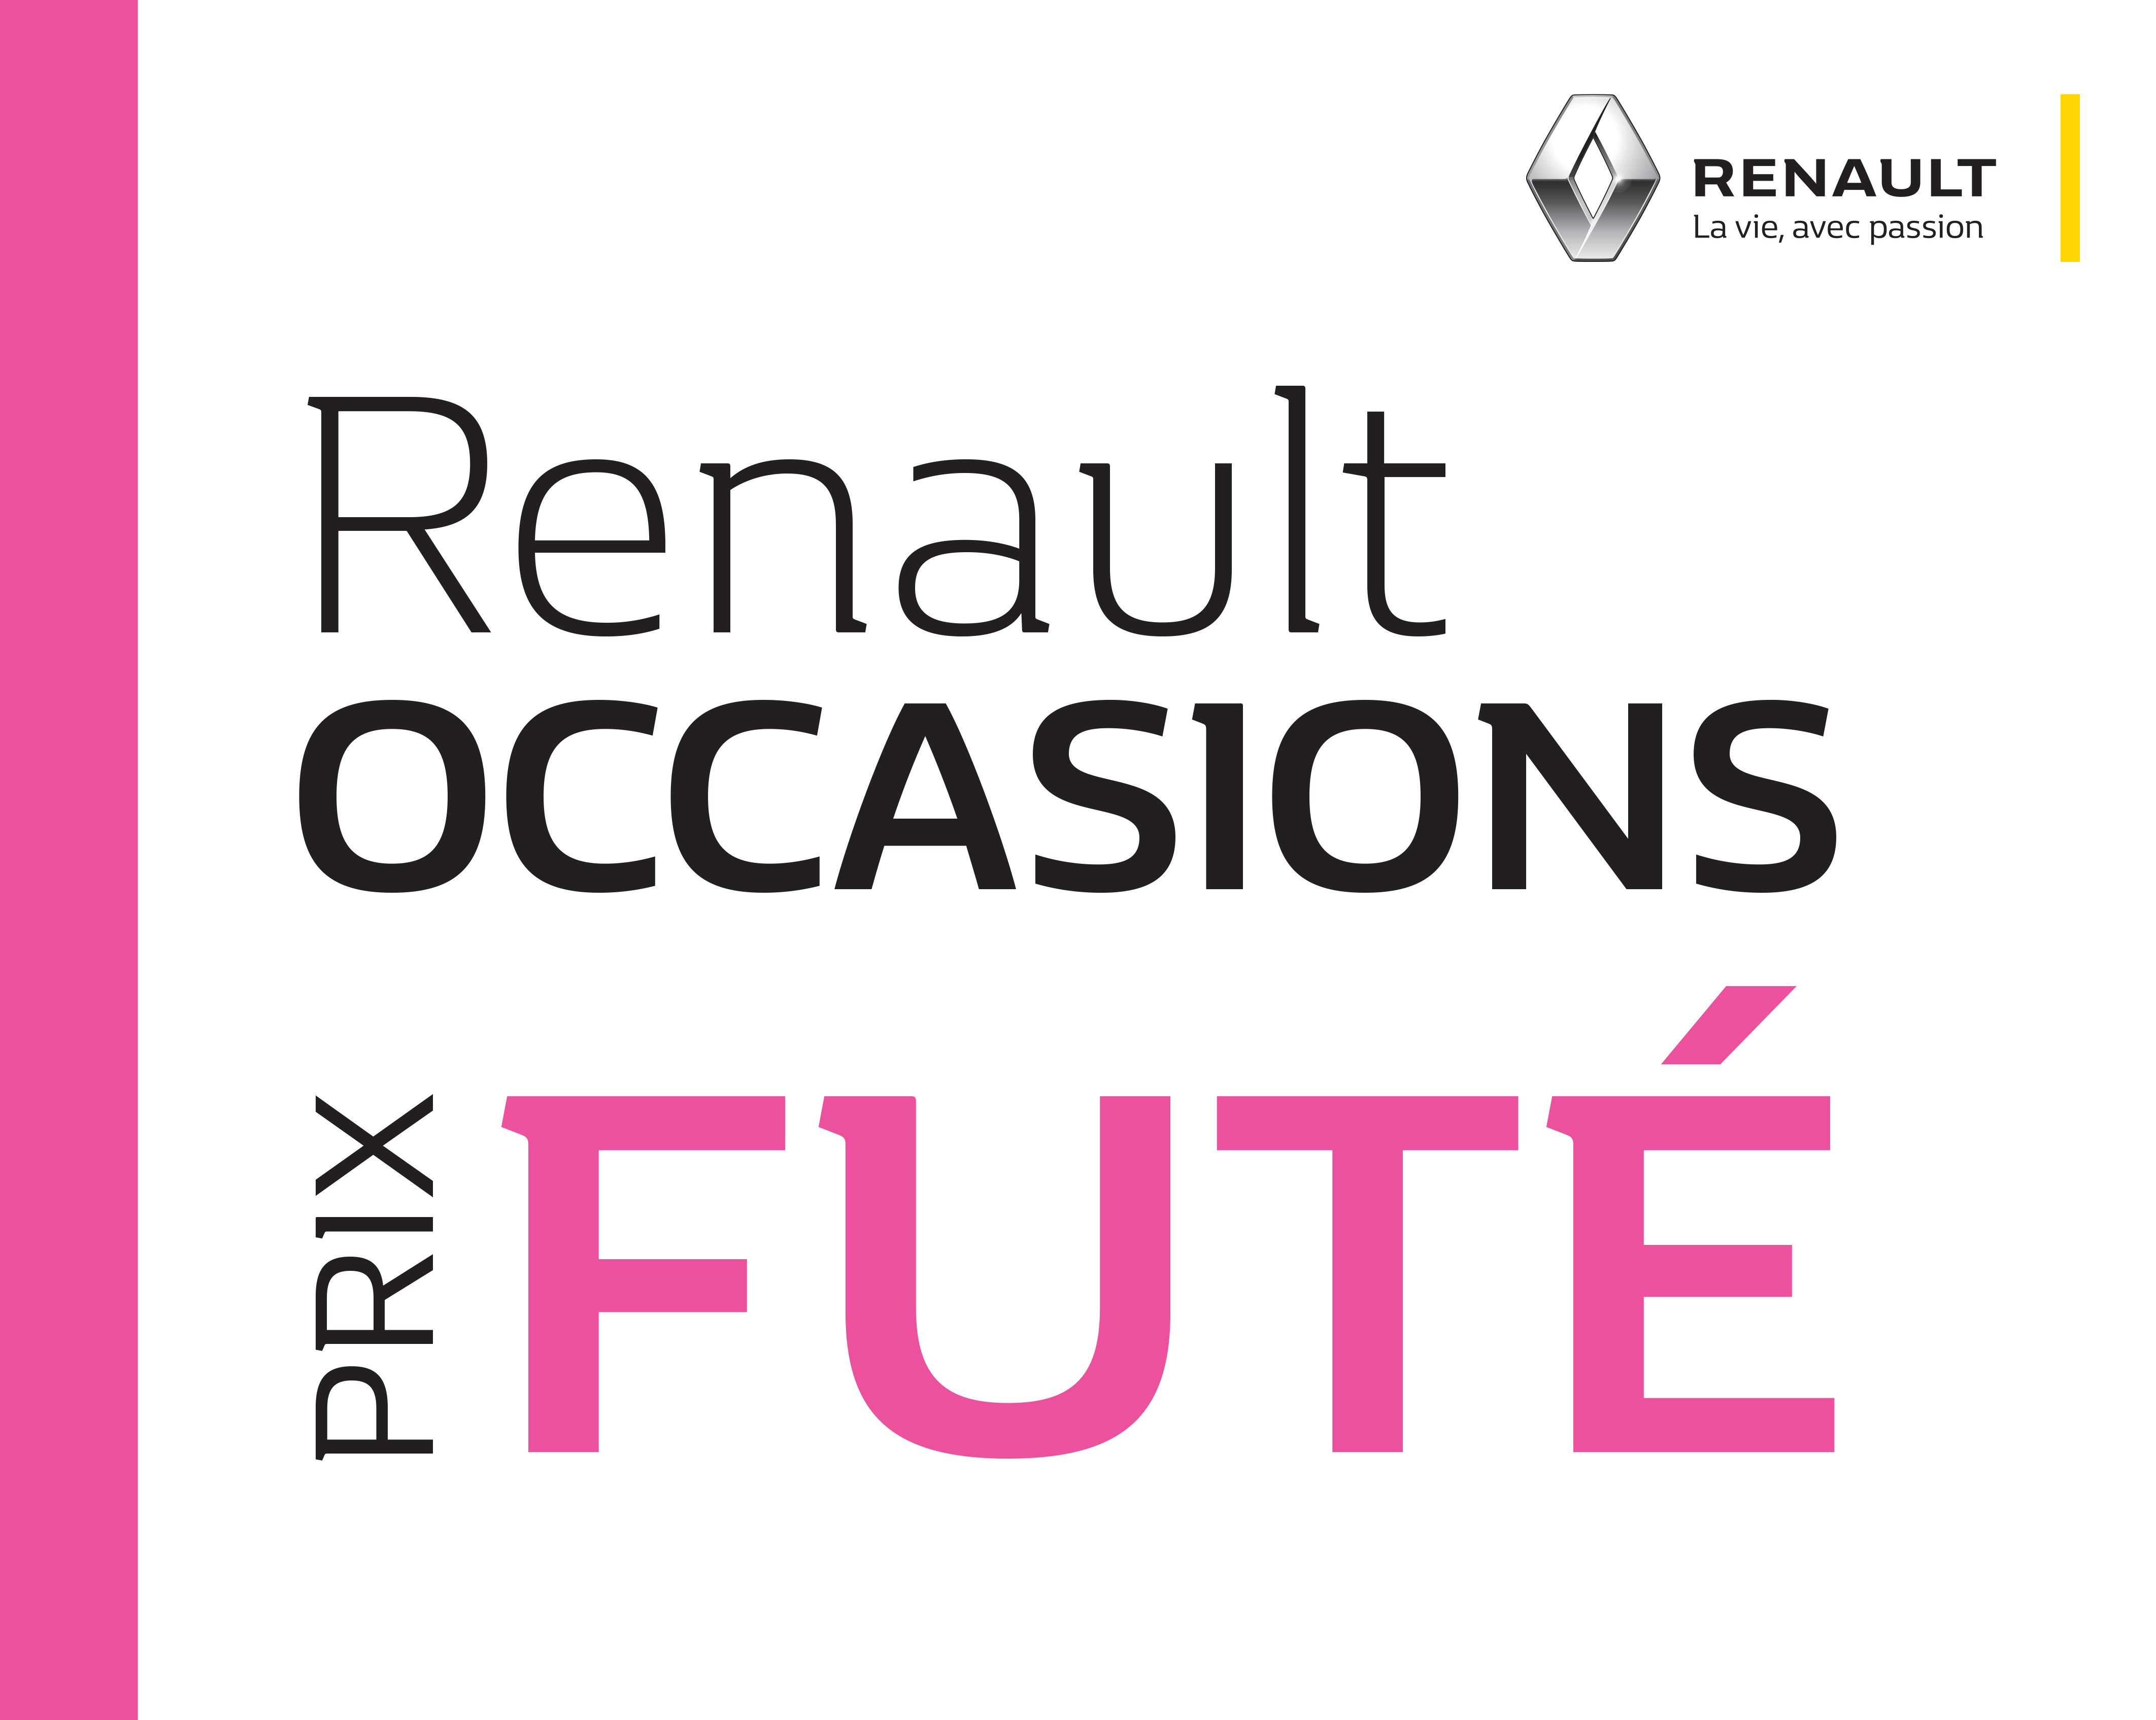 renault charenton concessionnaire renault charenton le. Black Bedroom Furniture Sets. Home Design Ideas